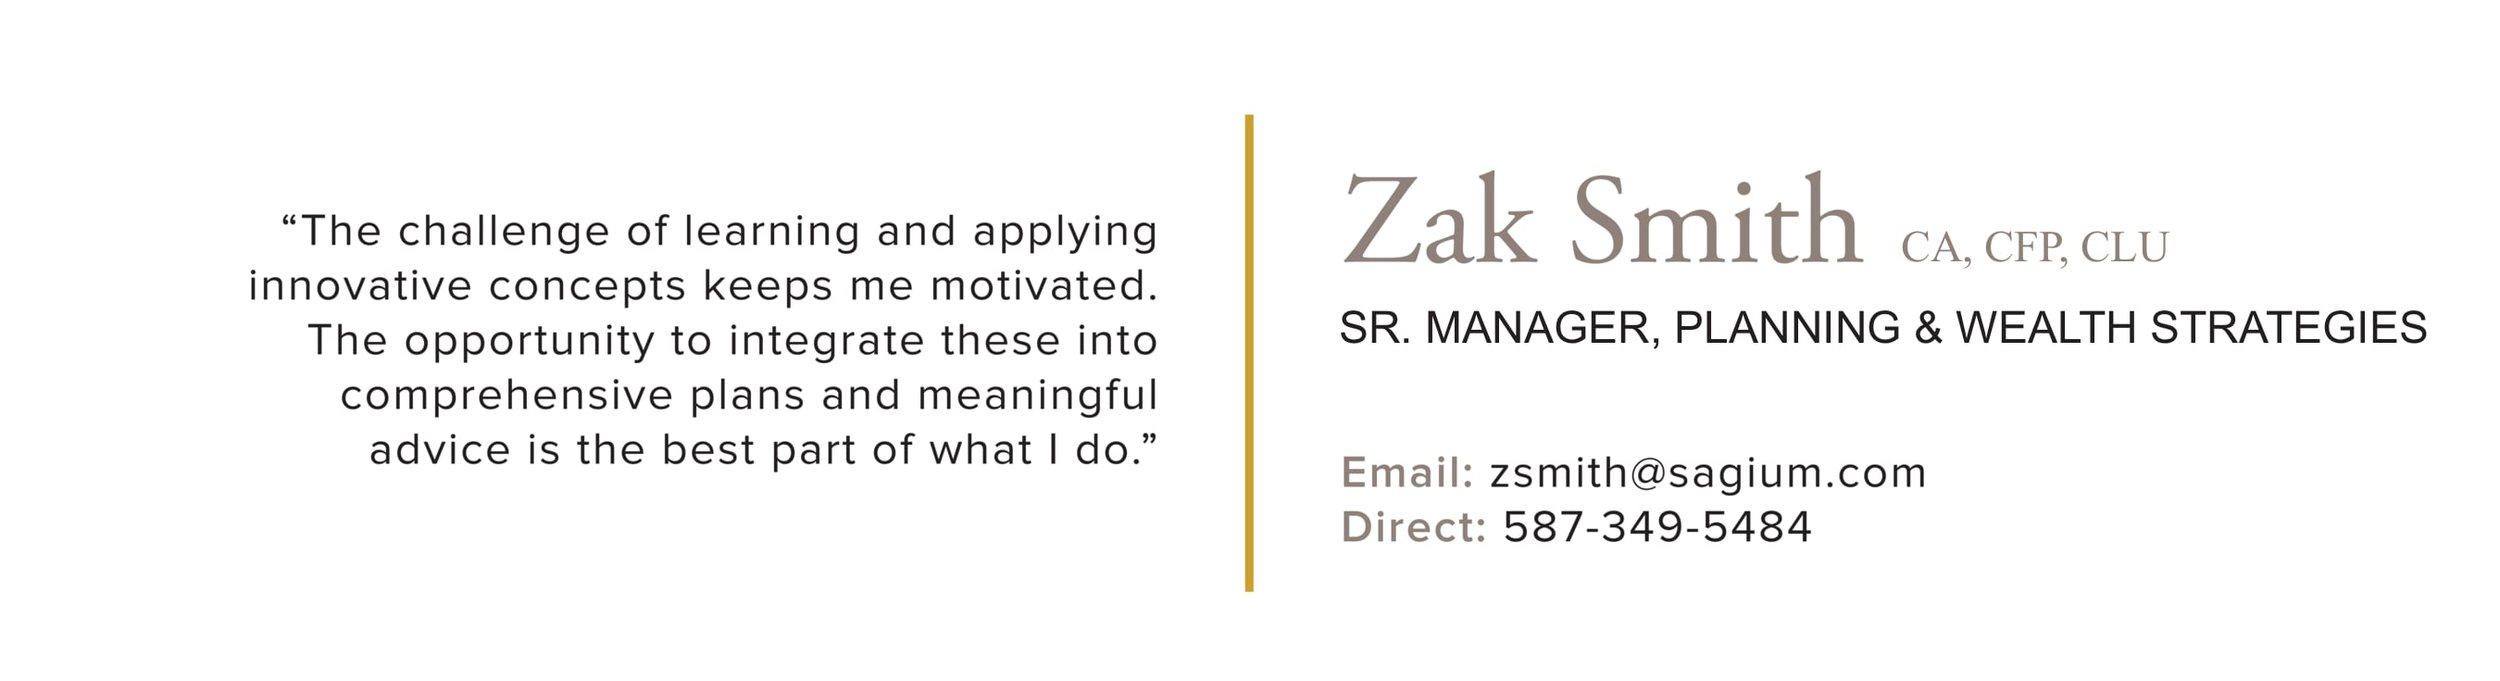 zak-smith-card-clu.jpg